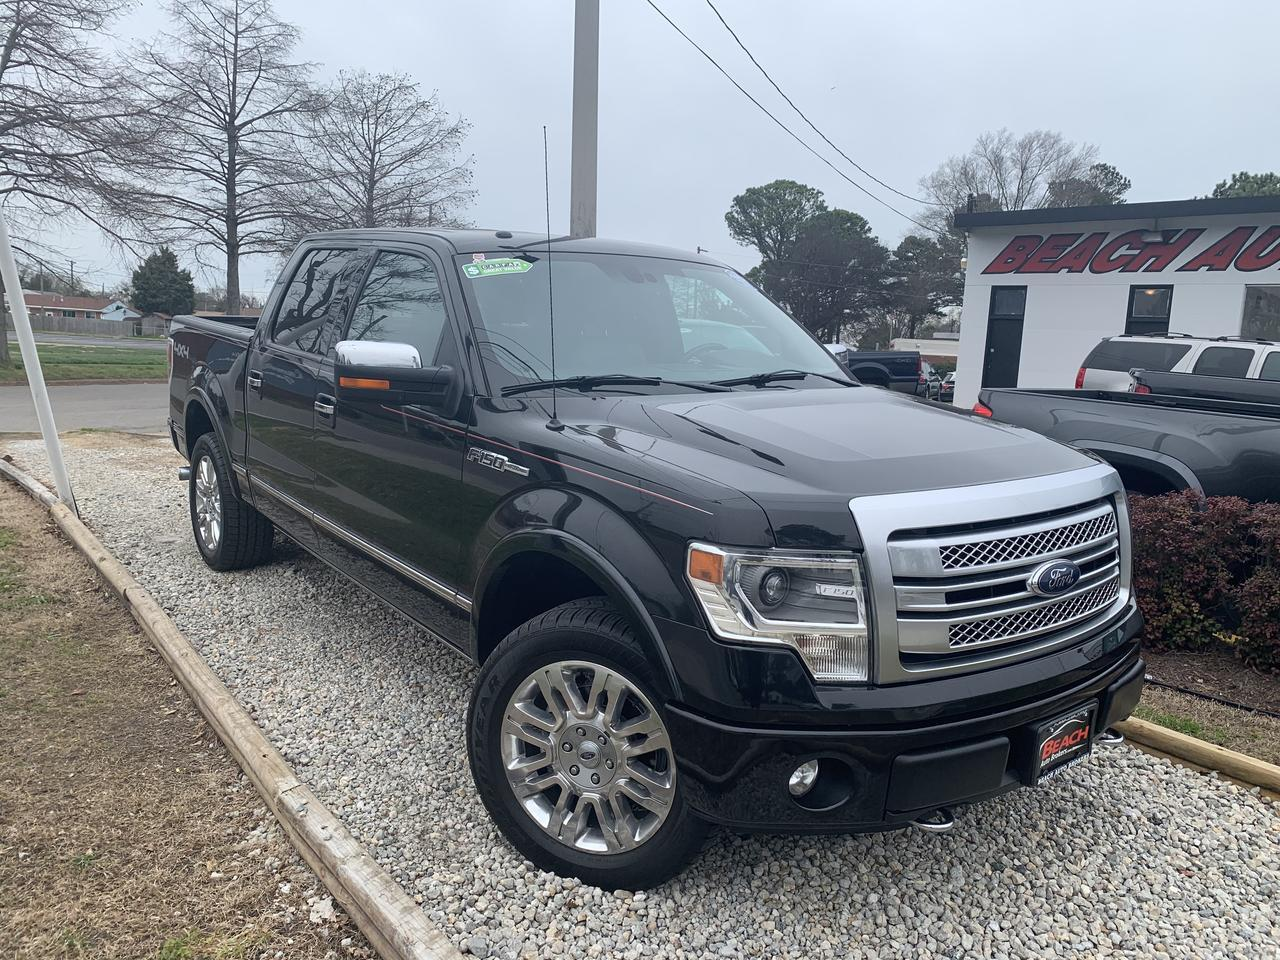 2013 FORD F-150 PLATINUM SUPERCREW 4X4, WARRANTY, LEATHER, NAV, SUNROOF, HEATED/COOLED SEATS, 1 OWNER, CLEAN CARFAX! Norfolk VA